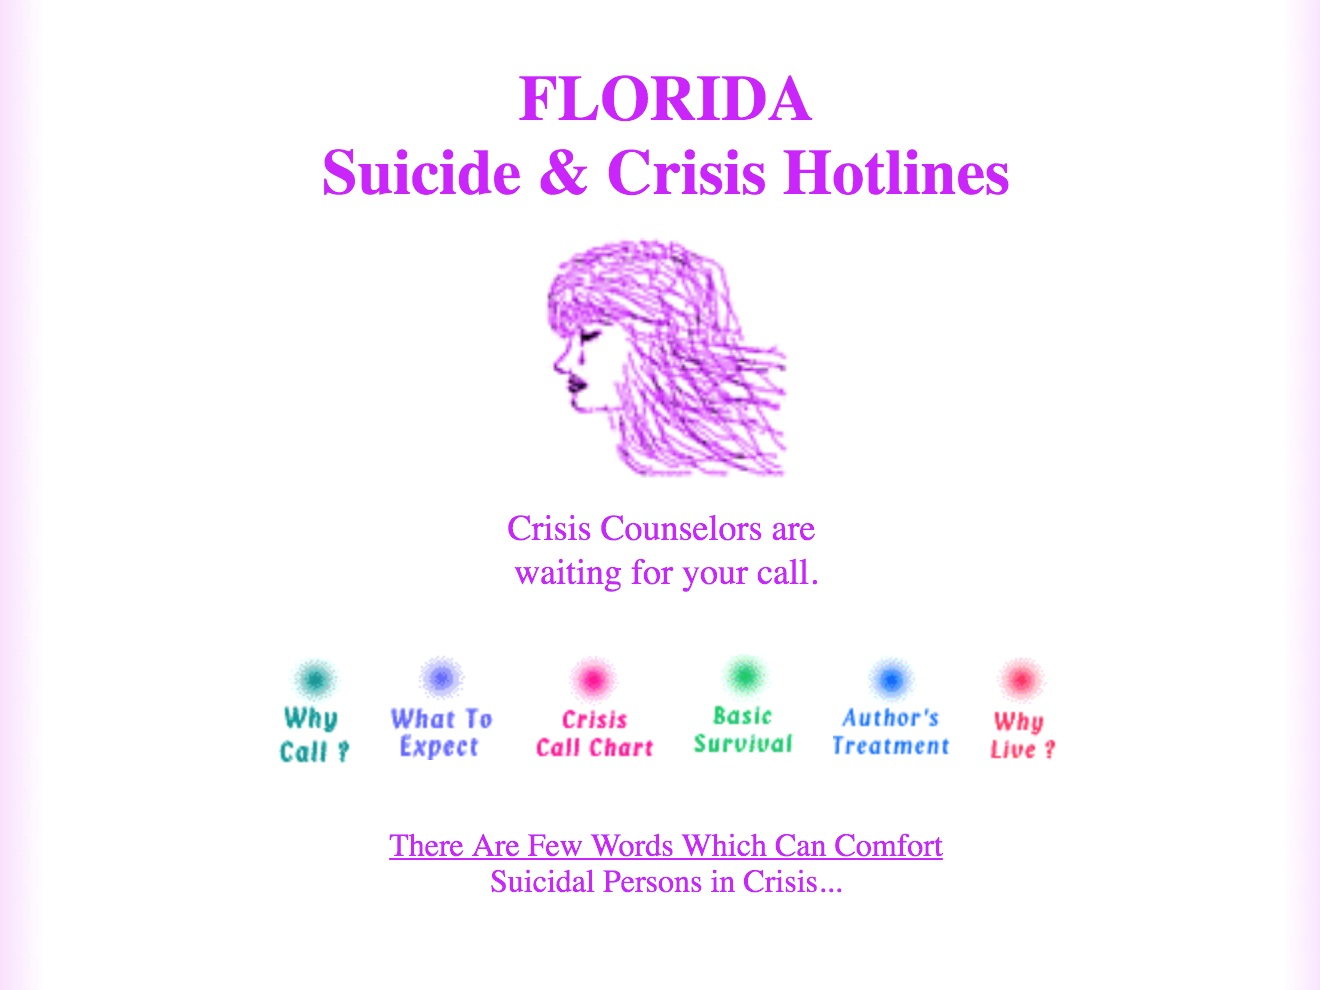 Florida hotlines - Various suicide and crisis hotline resources. Many hotlines have county-specific availability.